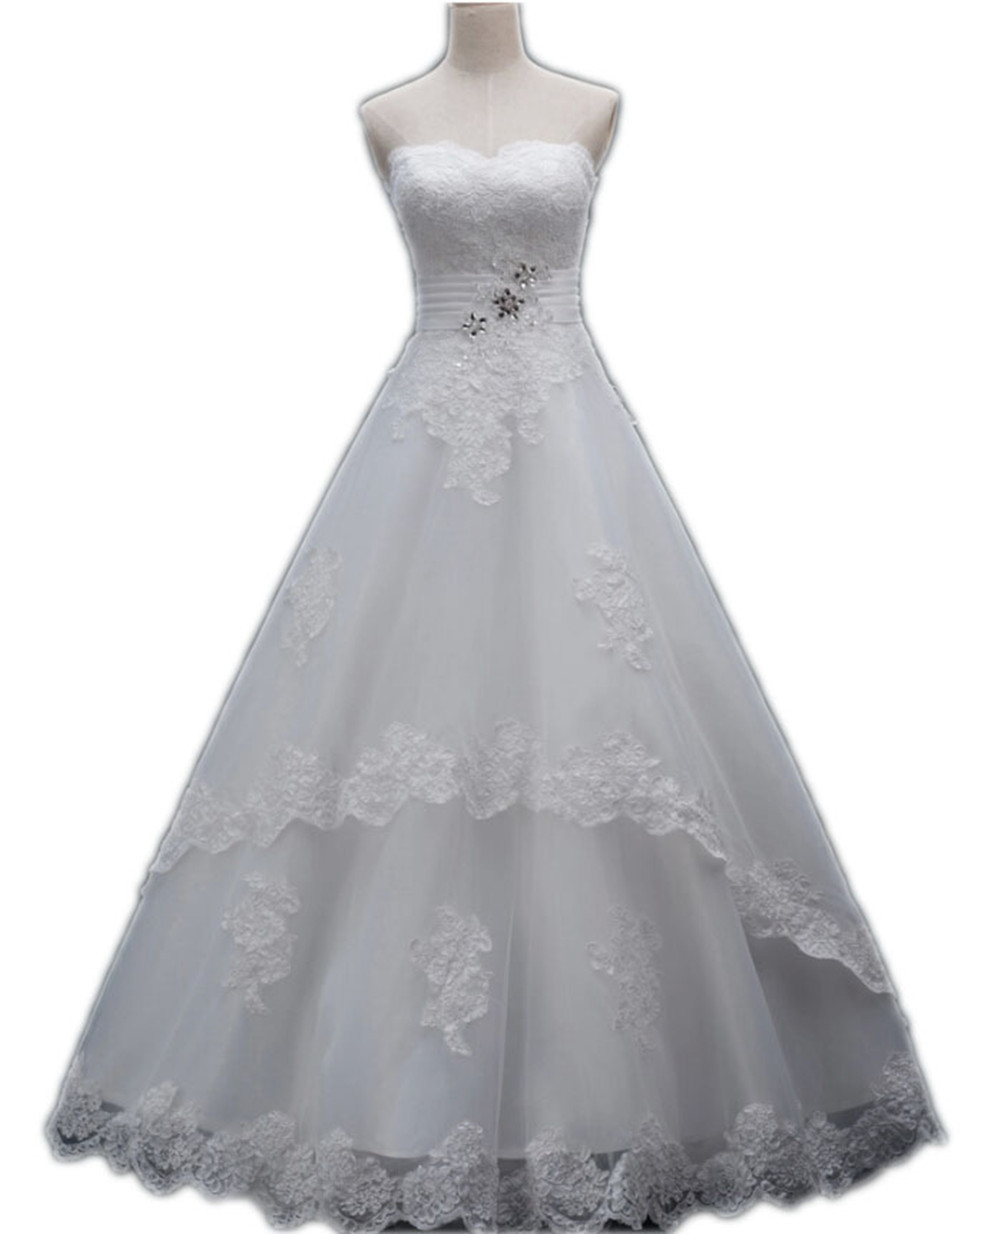 Cheap Wedding Dresses Online Shop 2015 Lace Bridal Gown Sweetheart Lace Up Back Bride Dress